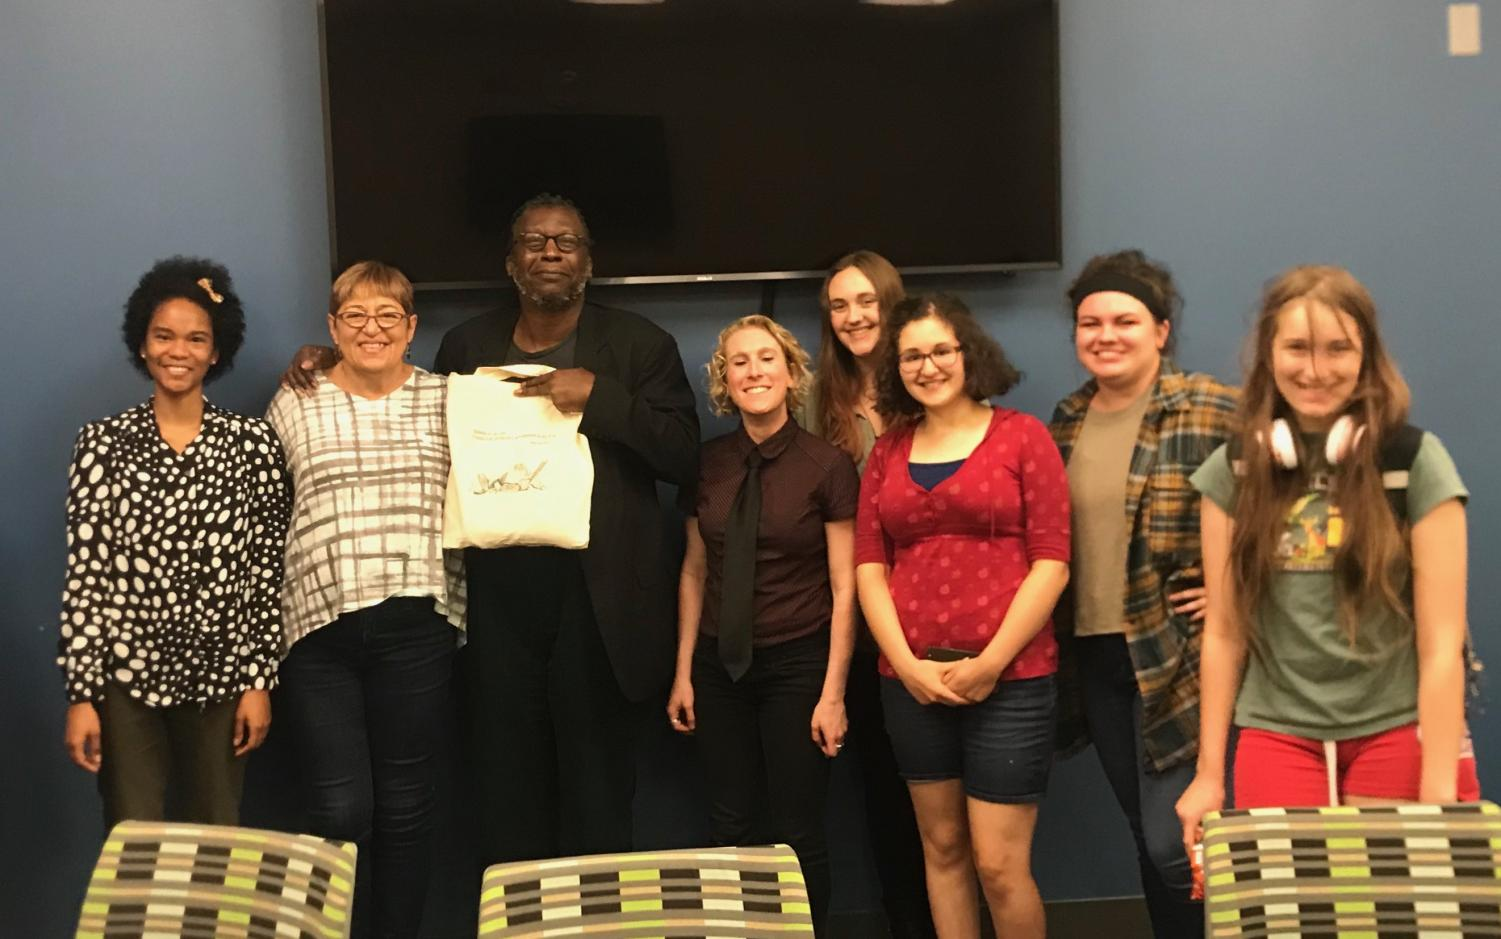 The people who came to the workshop, with  Toi Derricotte one person from the left, and Cornelius Eady to the right of her.